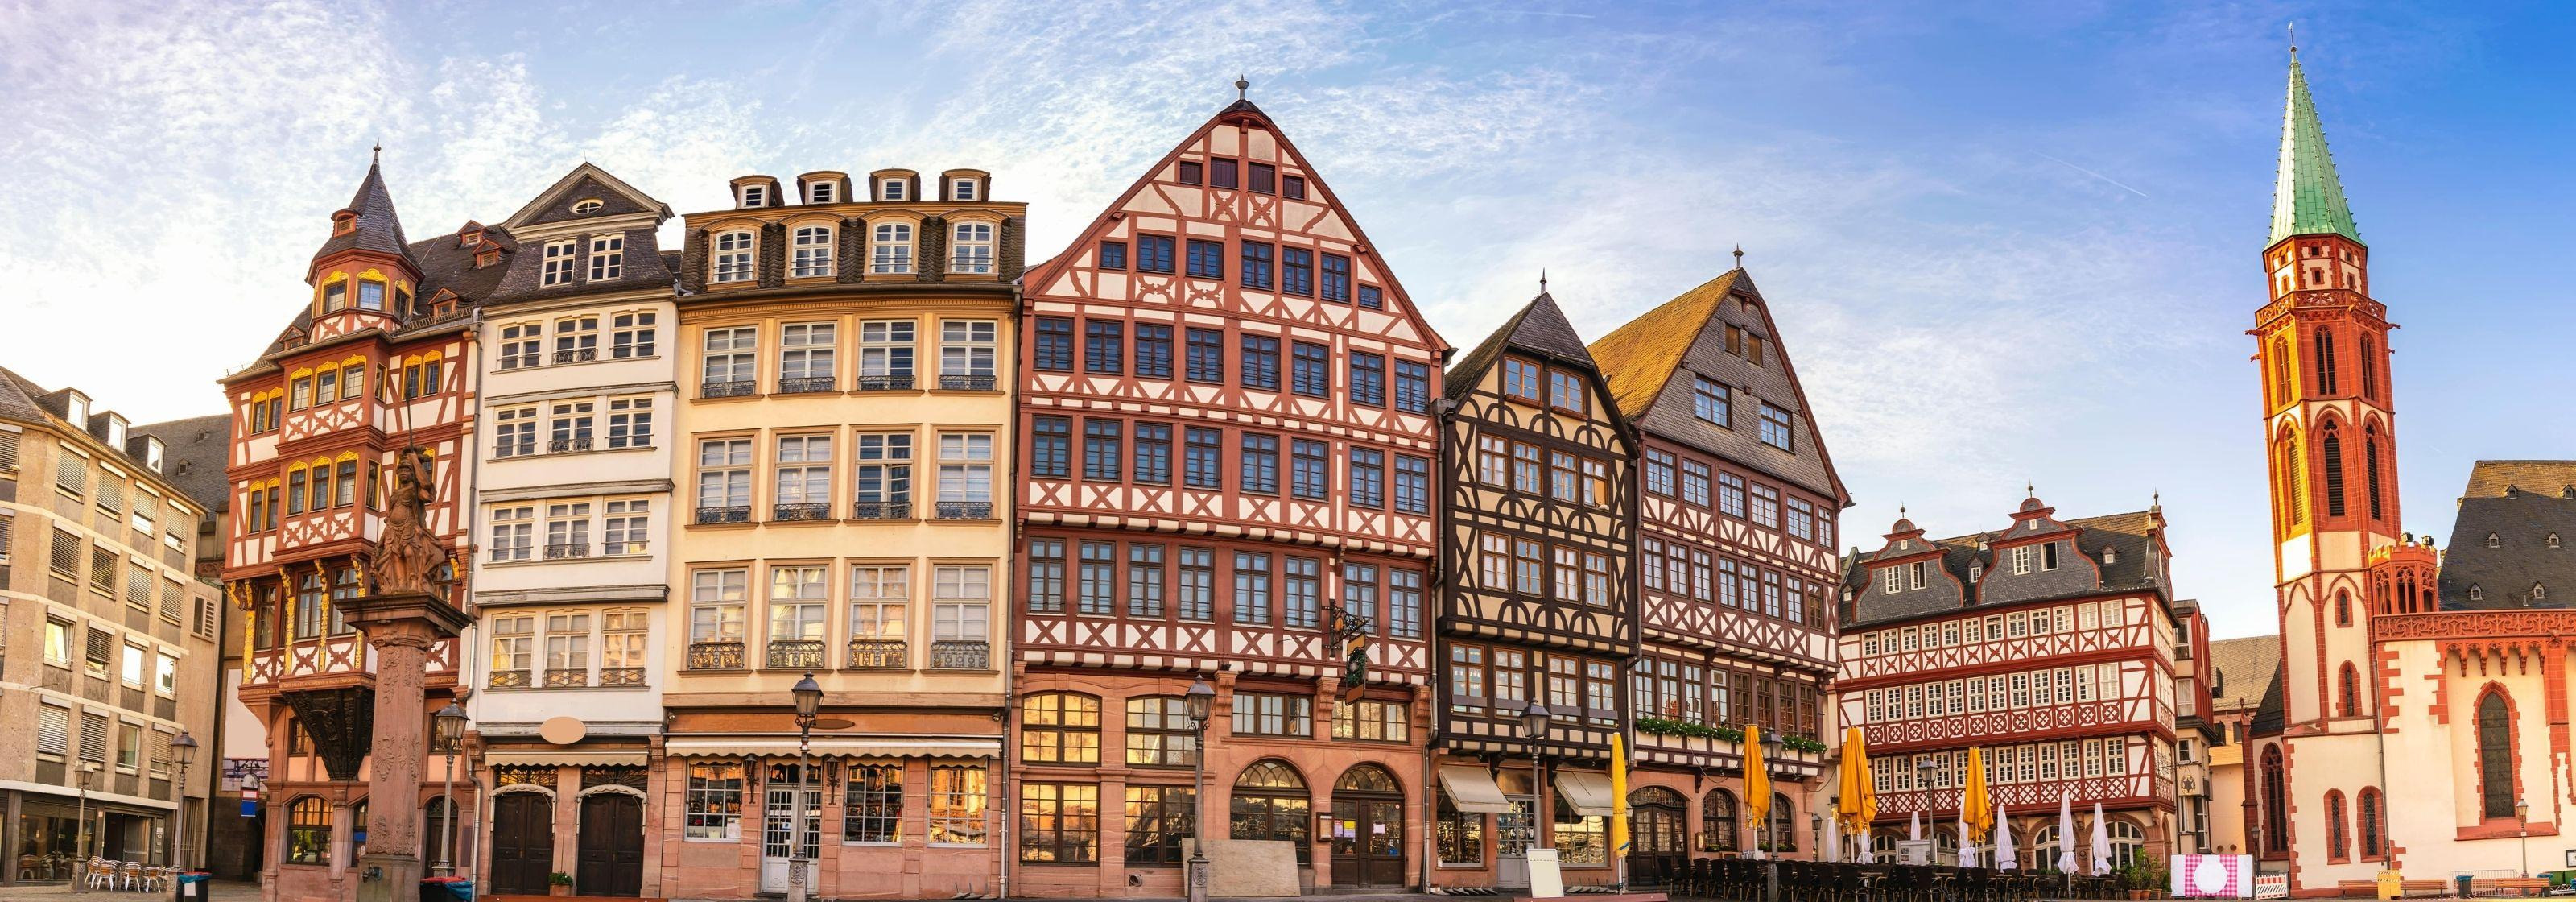 Things to do in Frankfurt